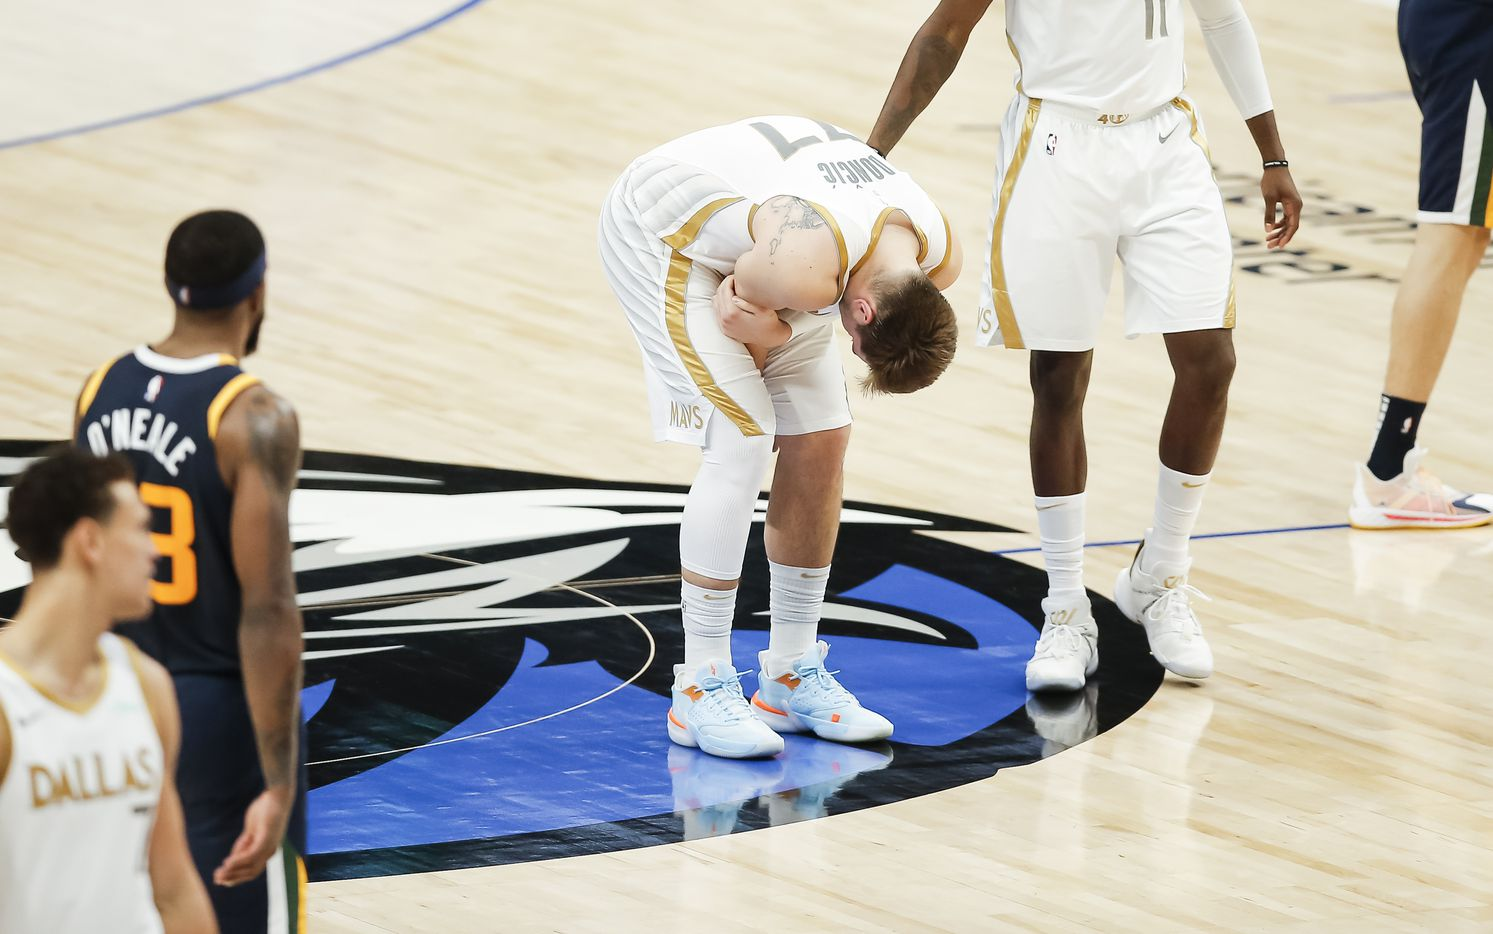 Dallas Mavericks guard Luka Doncic (77) grabs his right arm in pain during the second half of an NBA basketball game against the Utah Jazz in Dallas, Monday, April 5, 2021. Doncic would remain in the game. (Brandon Wade/Special Contributor)